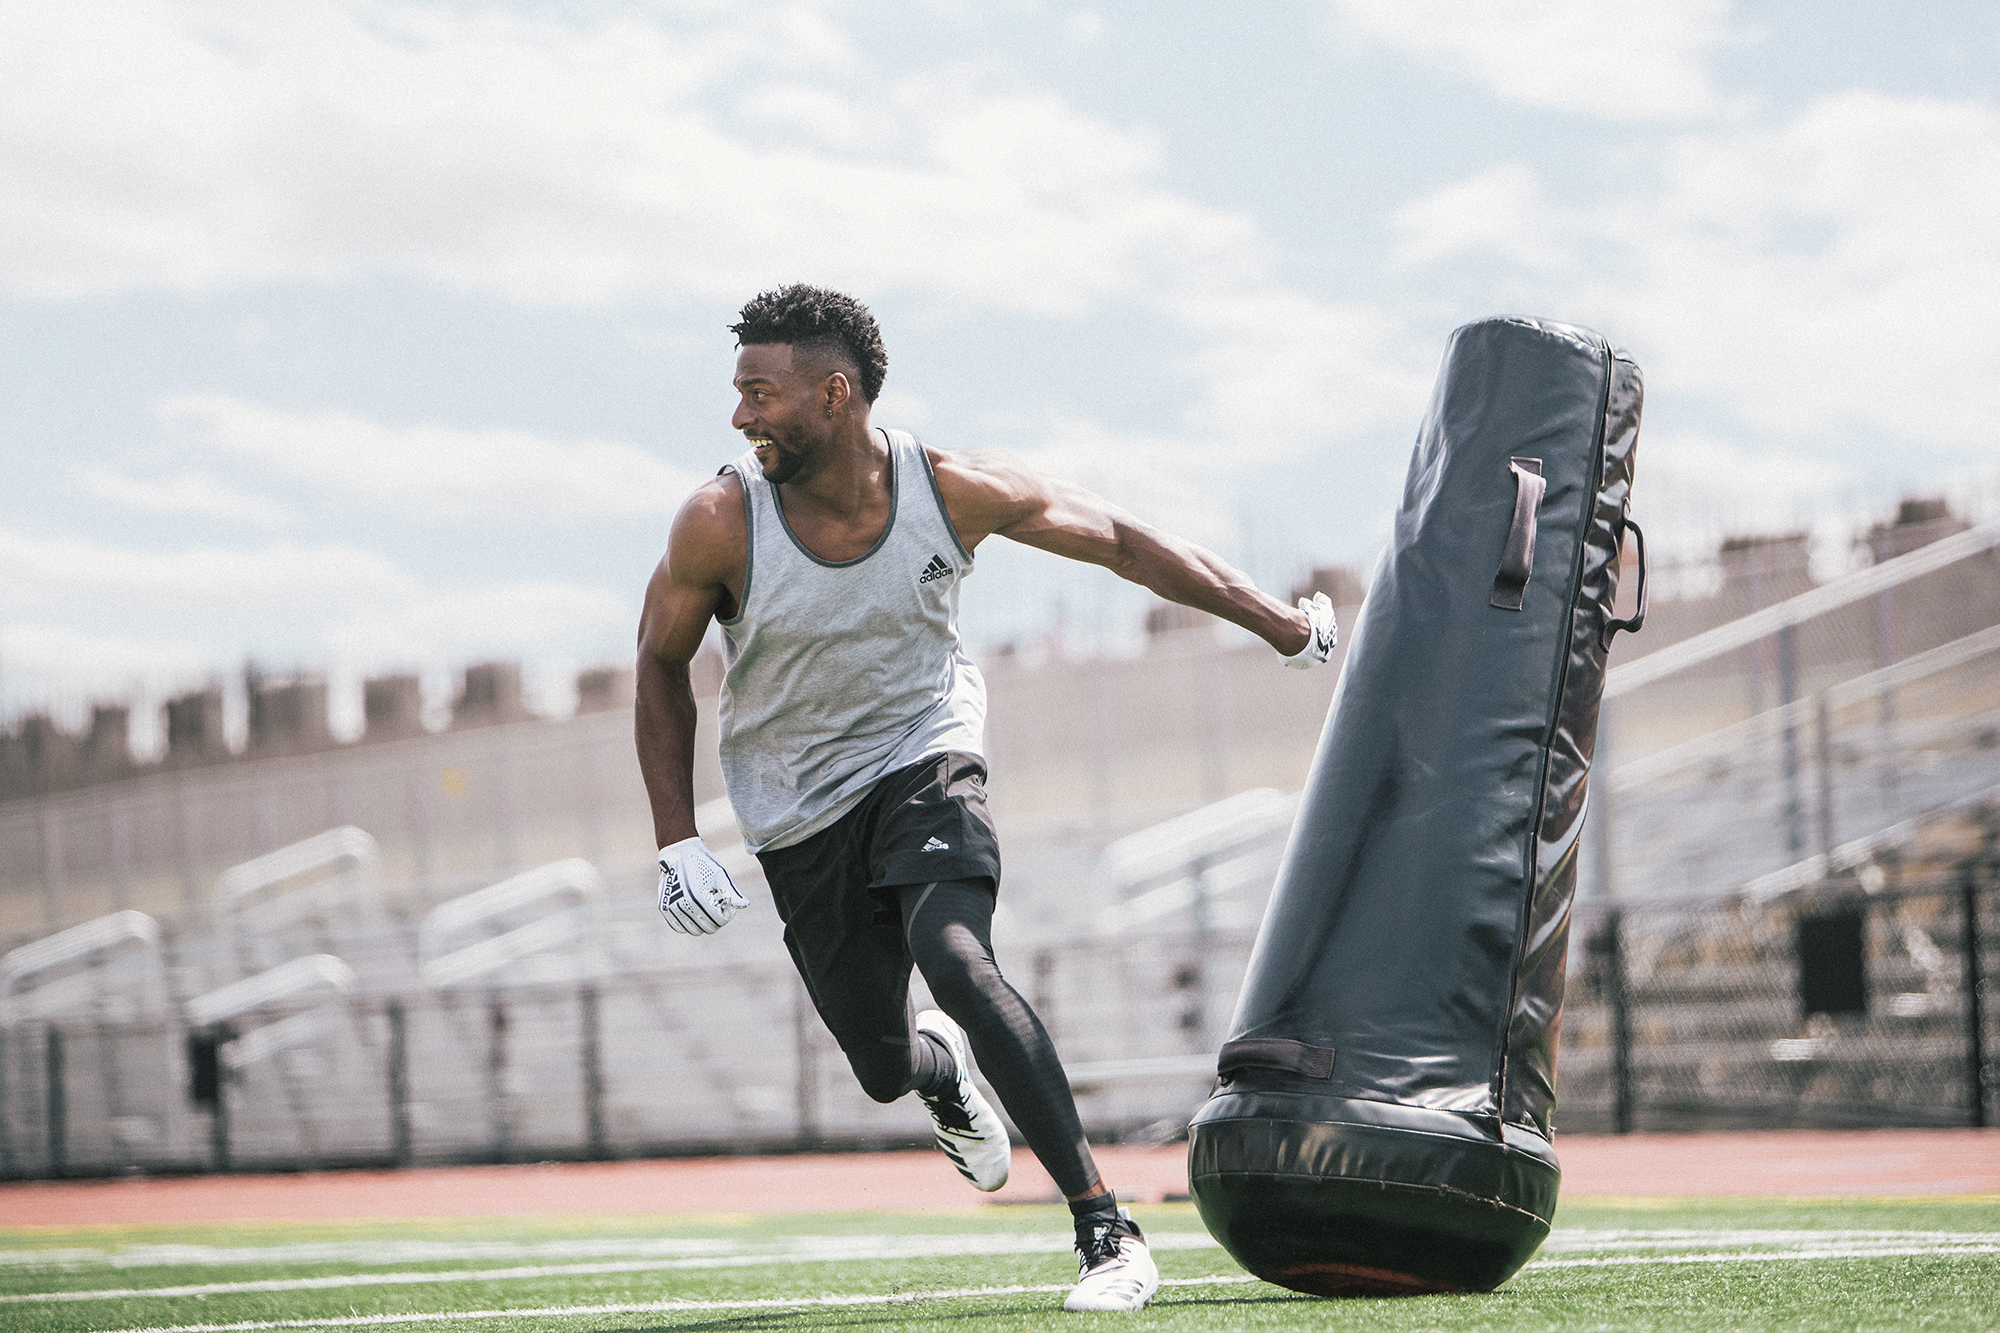 Emmanuel Sanders adidas adi zero football training